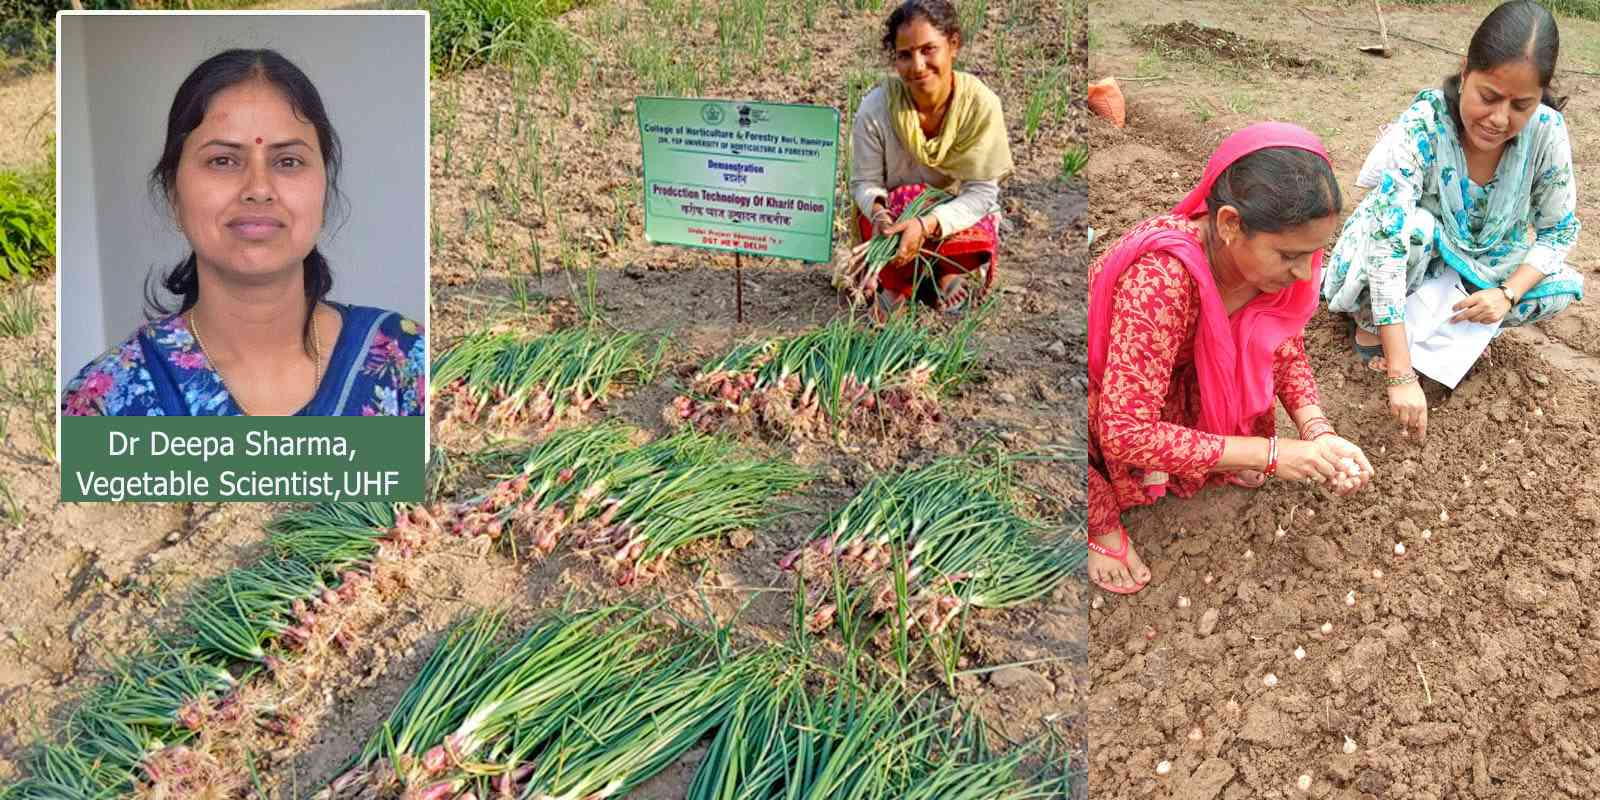 kharif onion in himachal by Dr Deepa Sharma, Vegetable Scientist